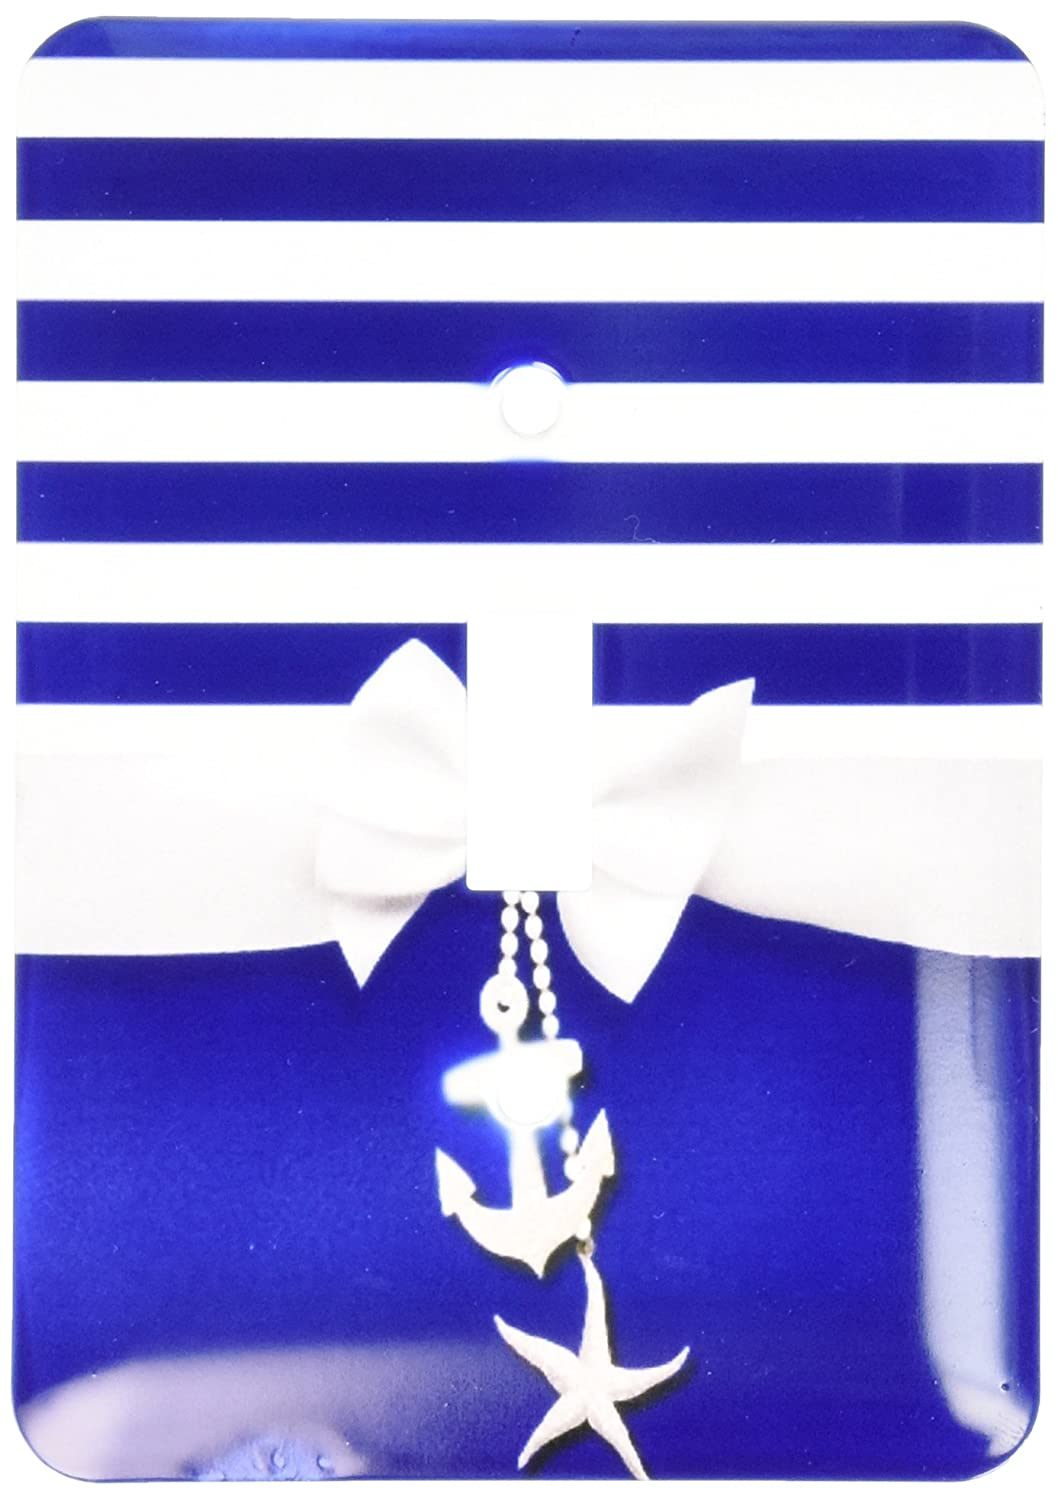 3Drose lsp_151234_1 Nautical Navy Blue and White Stripes 2D Ribbon Bow Graphic and Printed Anchor and Starfish Charms Single Toggle Switch 3dRose - CA